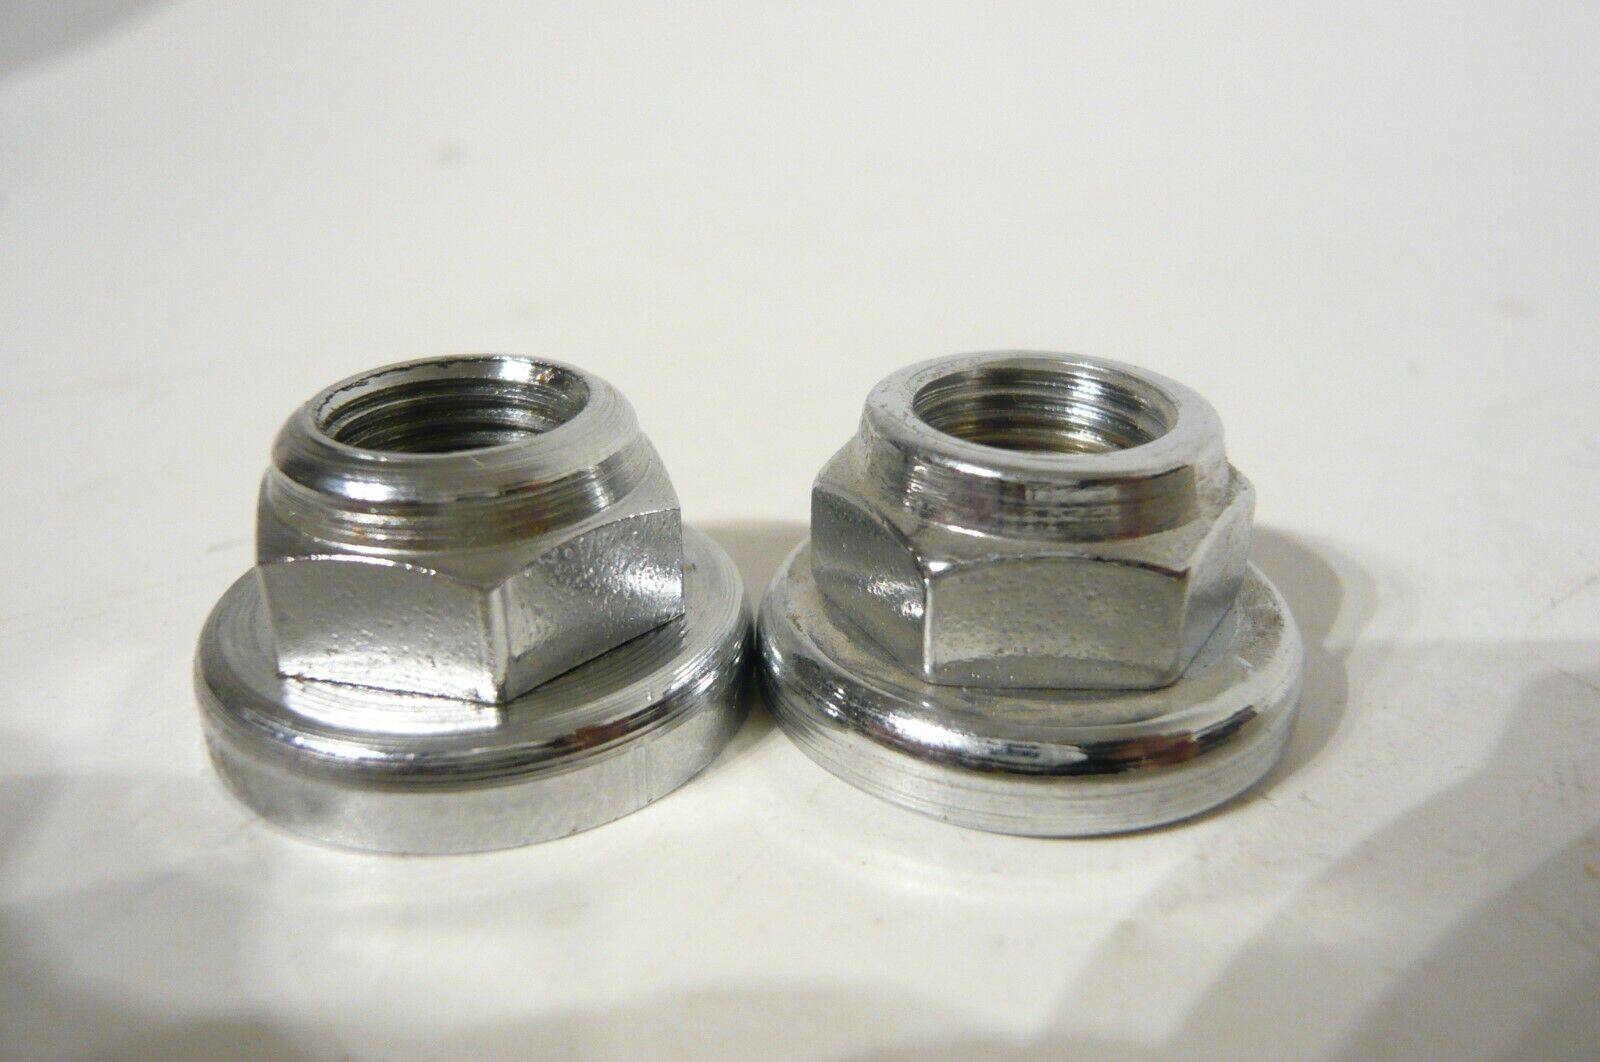 Campagnolo #668 Record  rear track hub chrome plated steel lock nut x 2 pieces